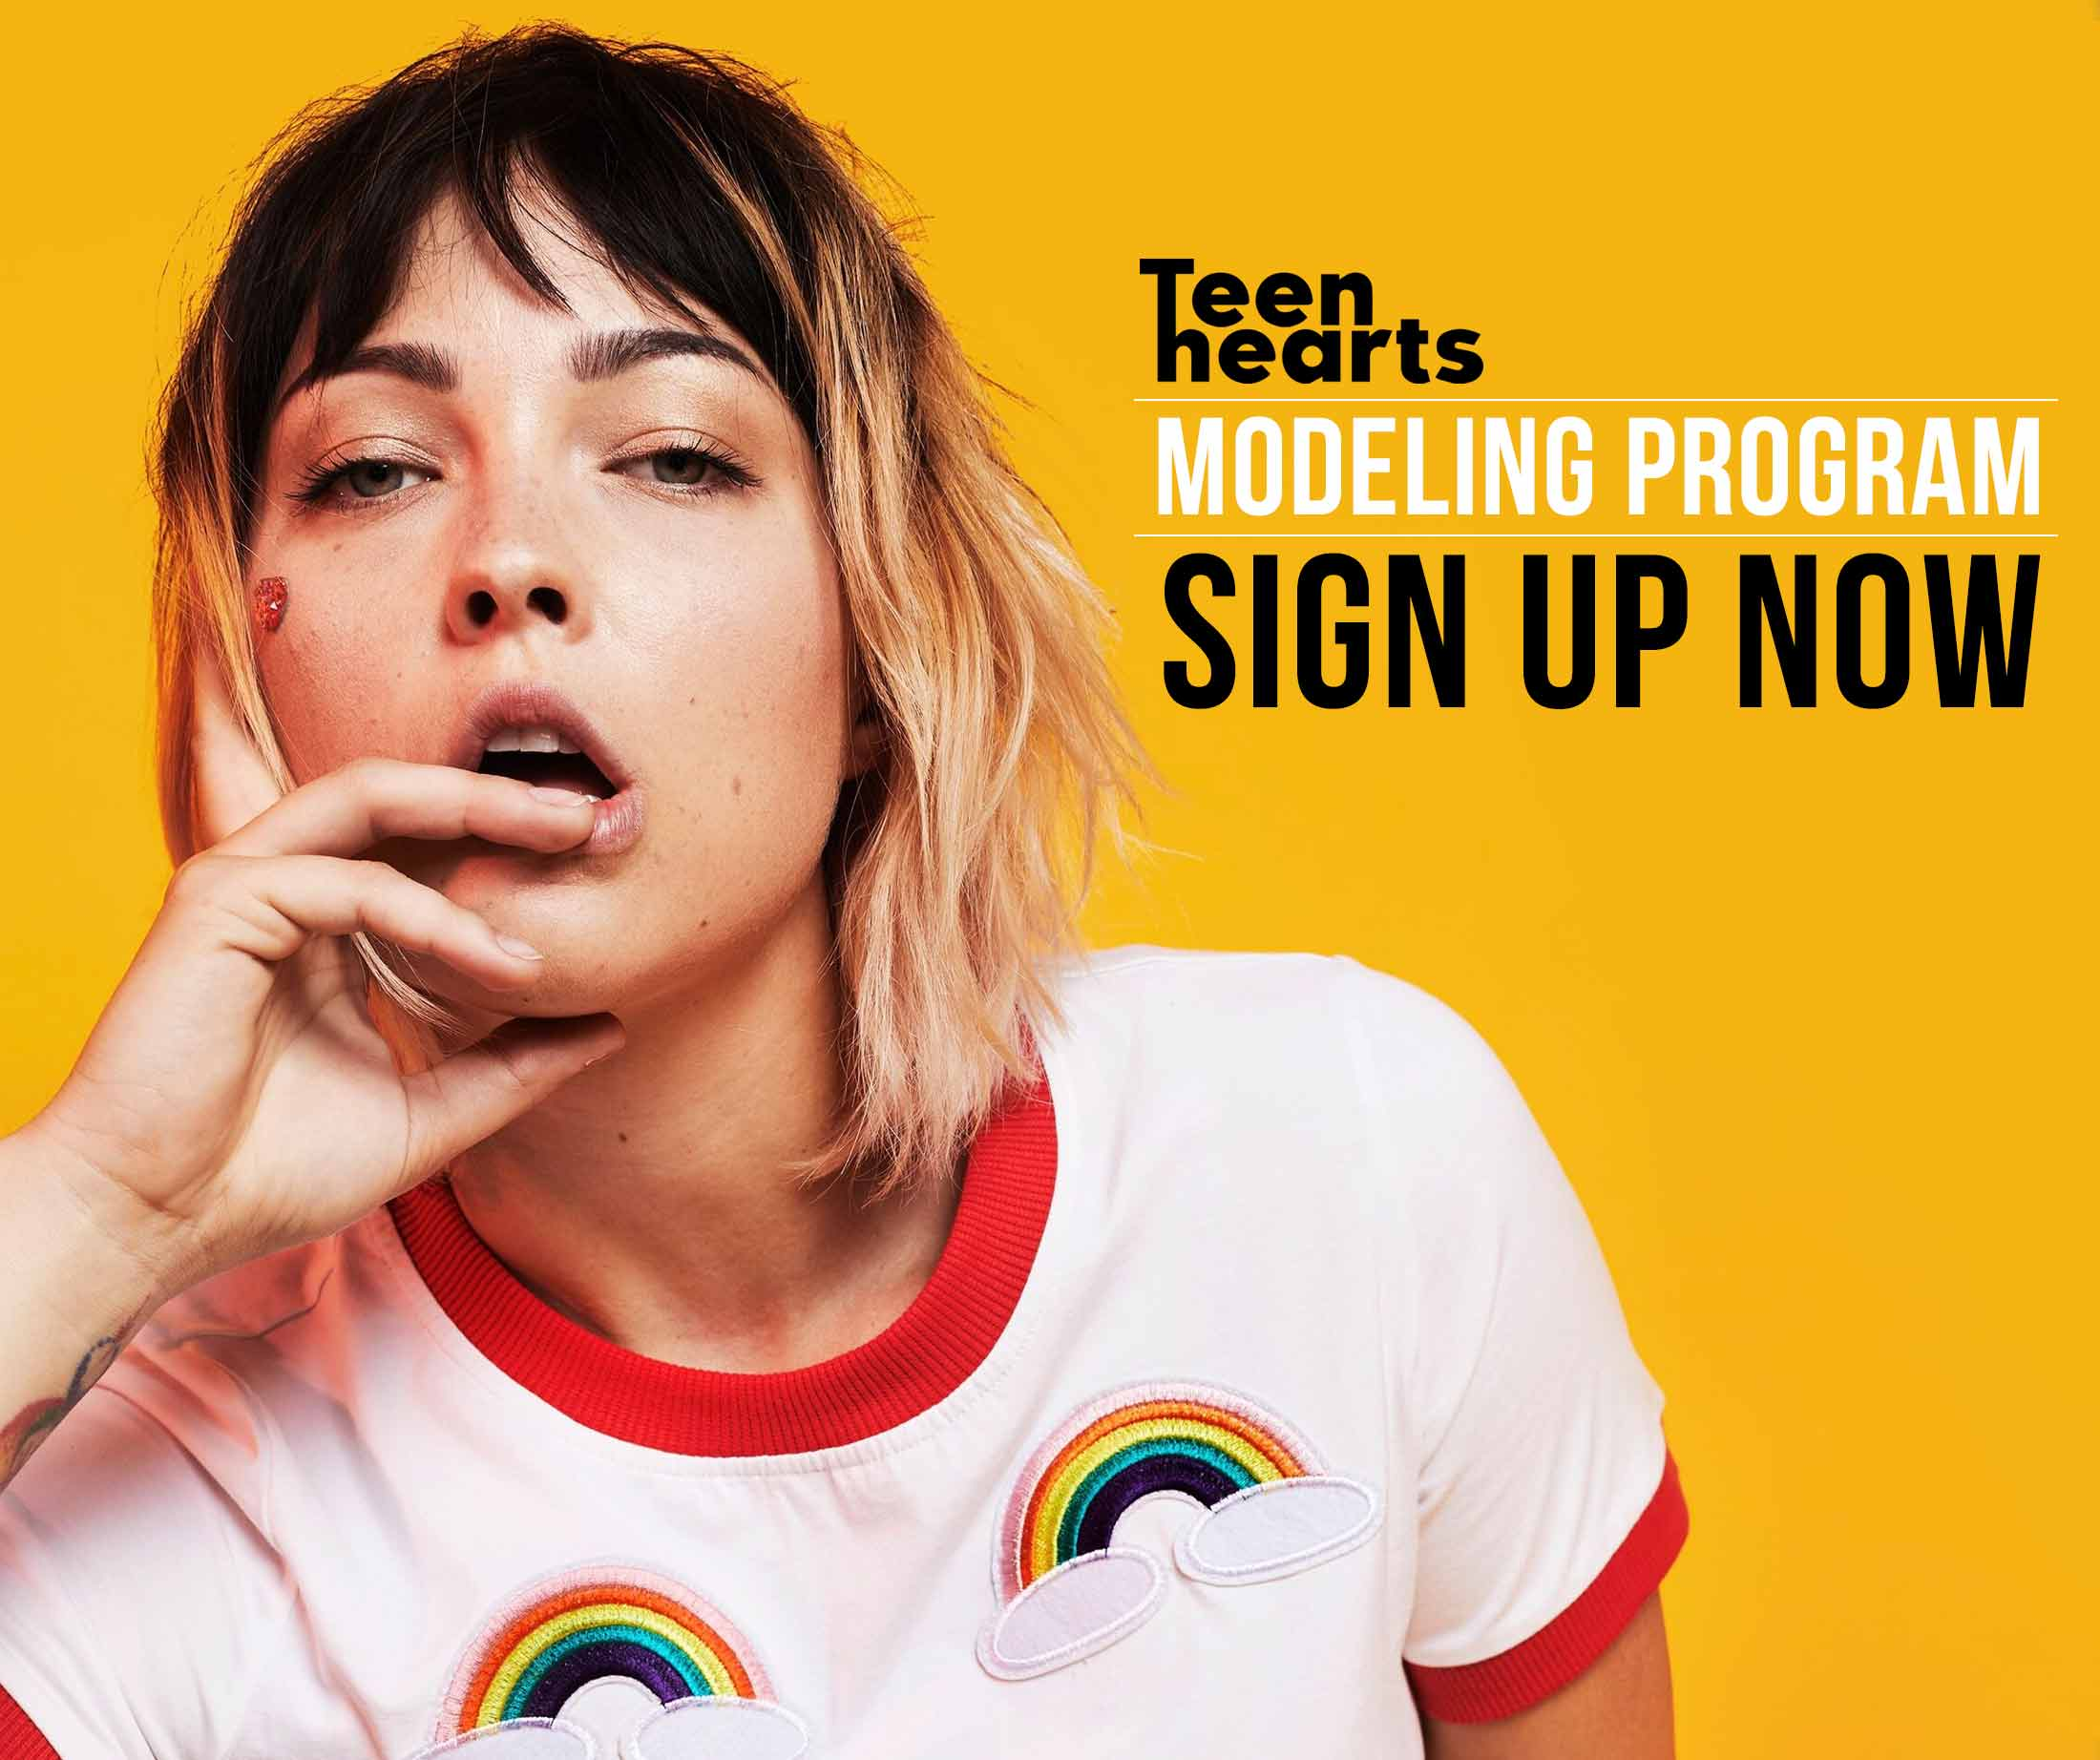 Want to work for teen hearts?